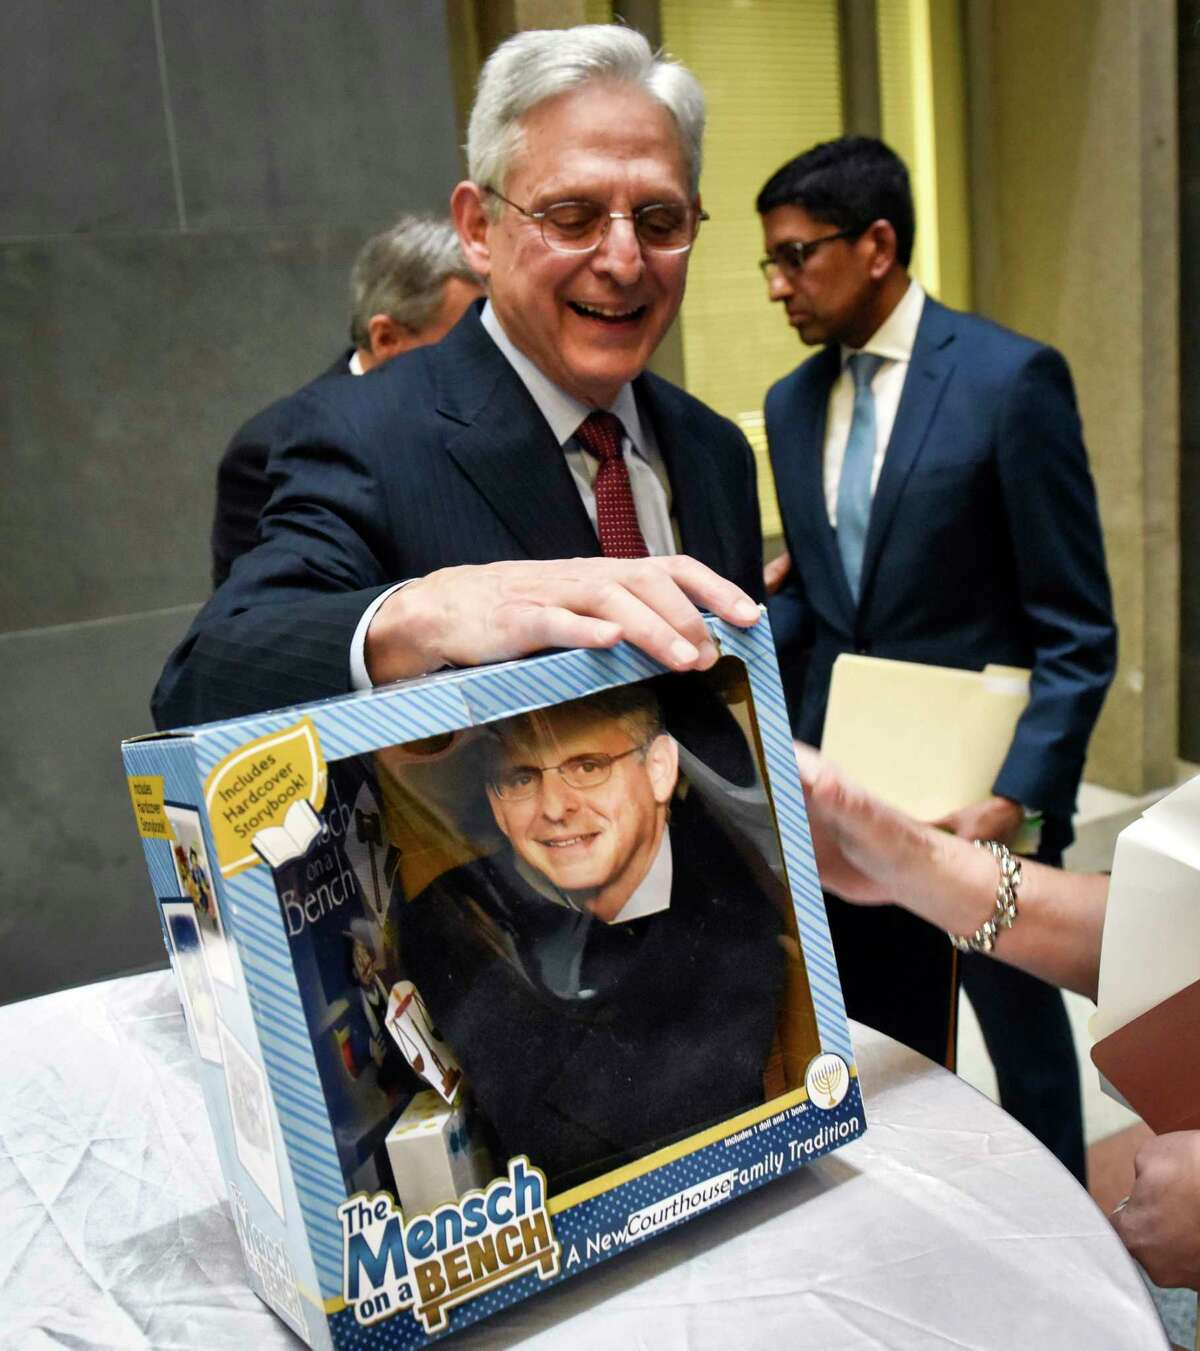 Judge Merrick Garland studies a toy that has been customized with his likeness, during a February, 2020 ceremony to pass the title of chief judge of the U.S. Court of Appeals for the D.C. Circuit to Sri Srinivasan, back right.